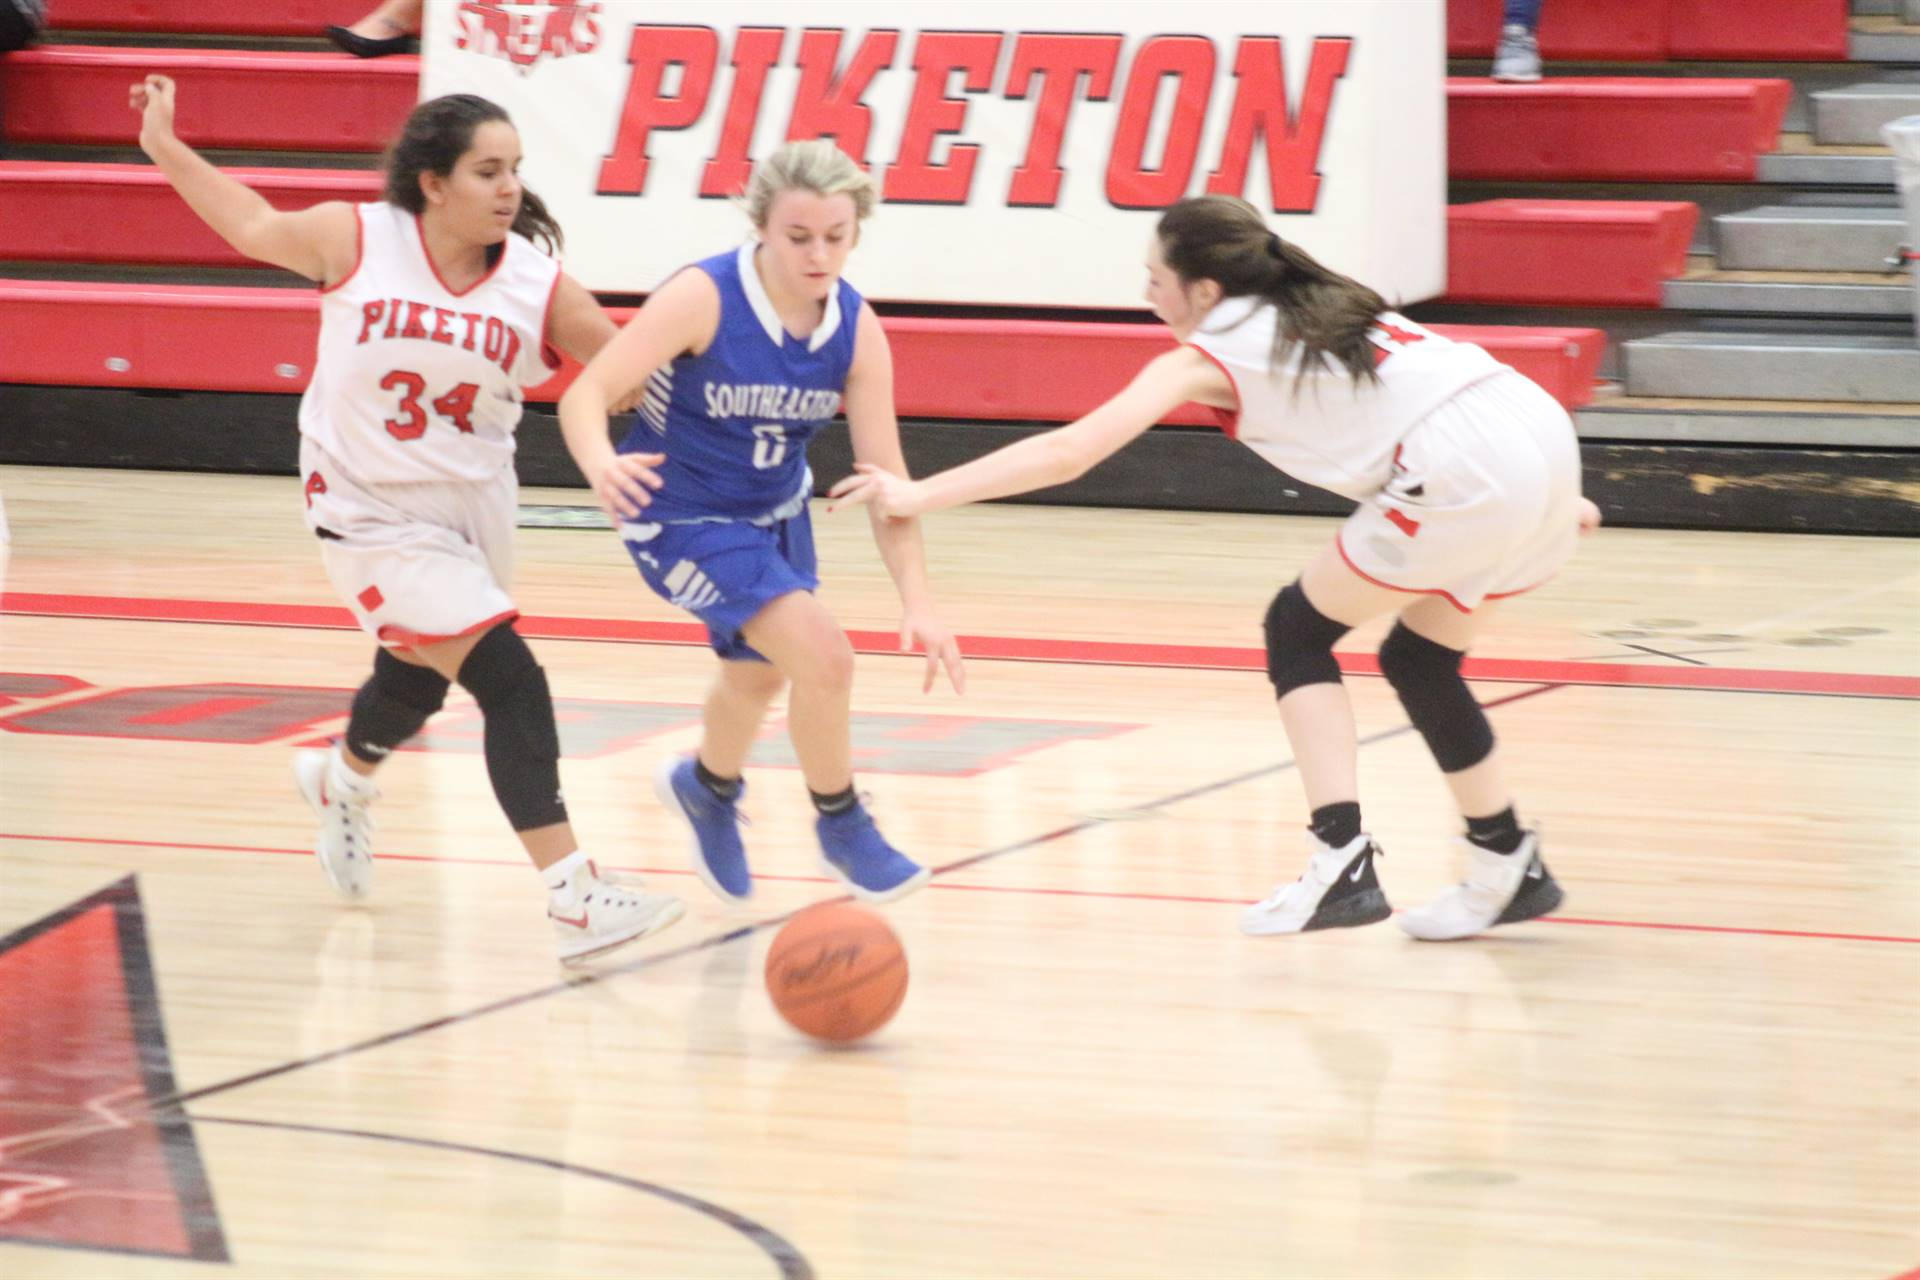 SE Girls Basketball vs Piketon